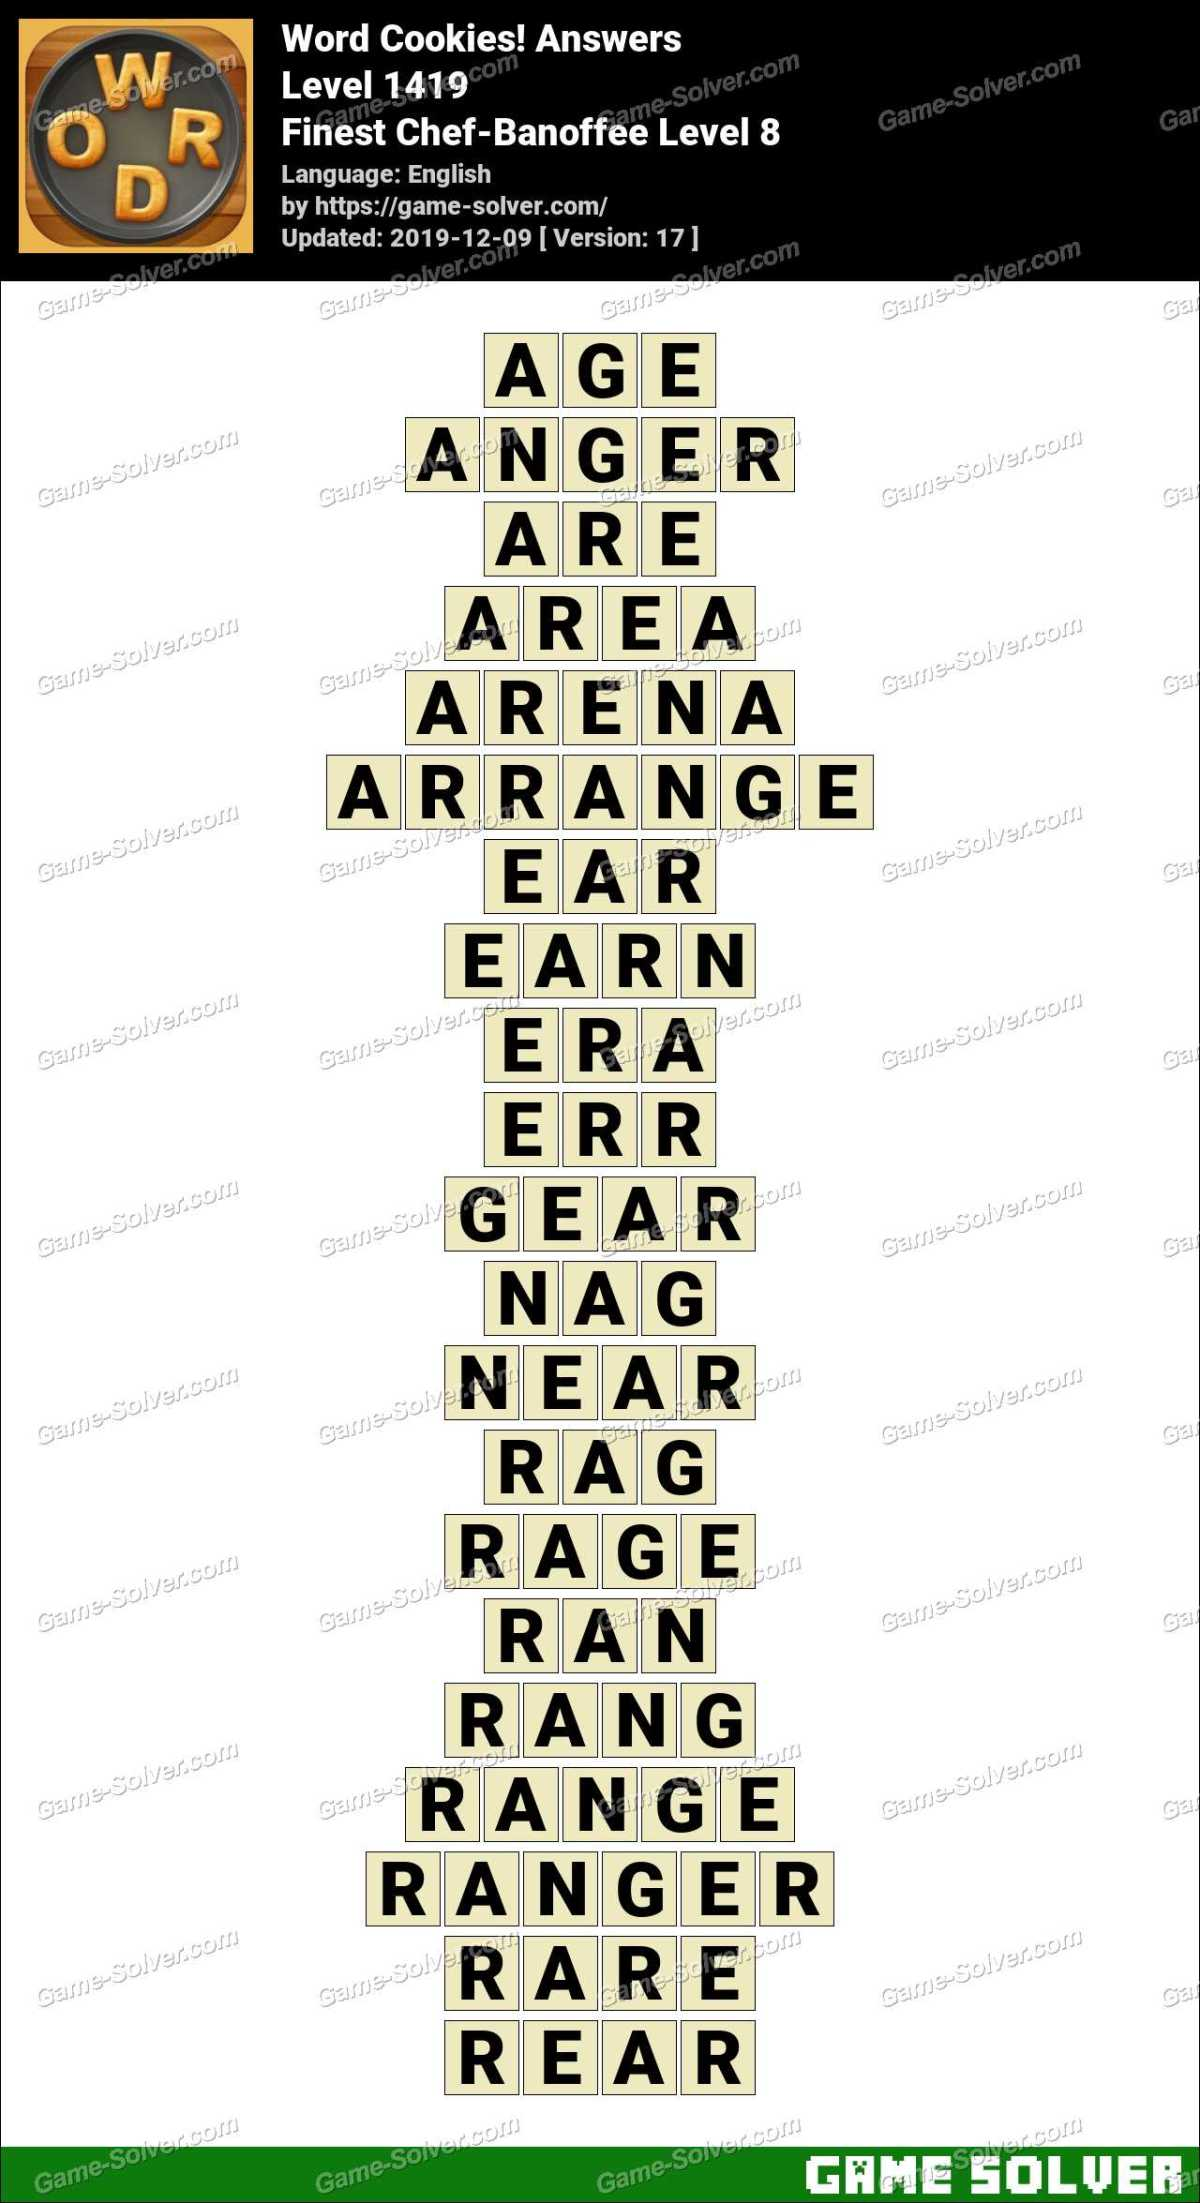 Word Cookies Finest Chef-Banoffee Level 8 Answers